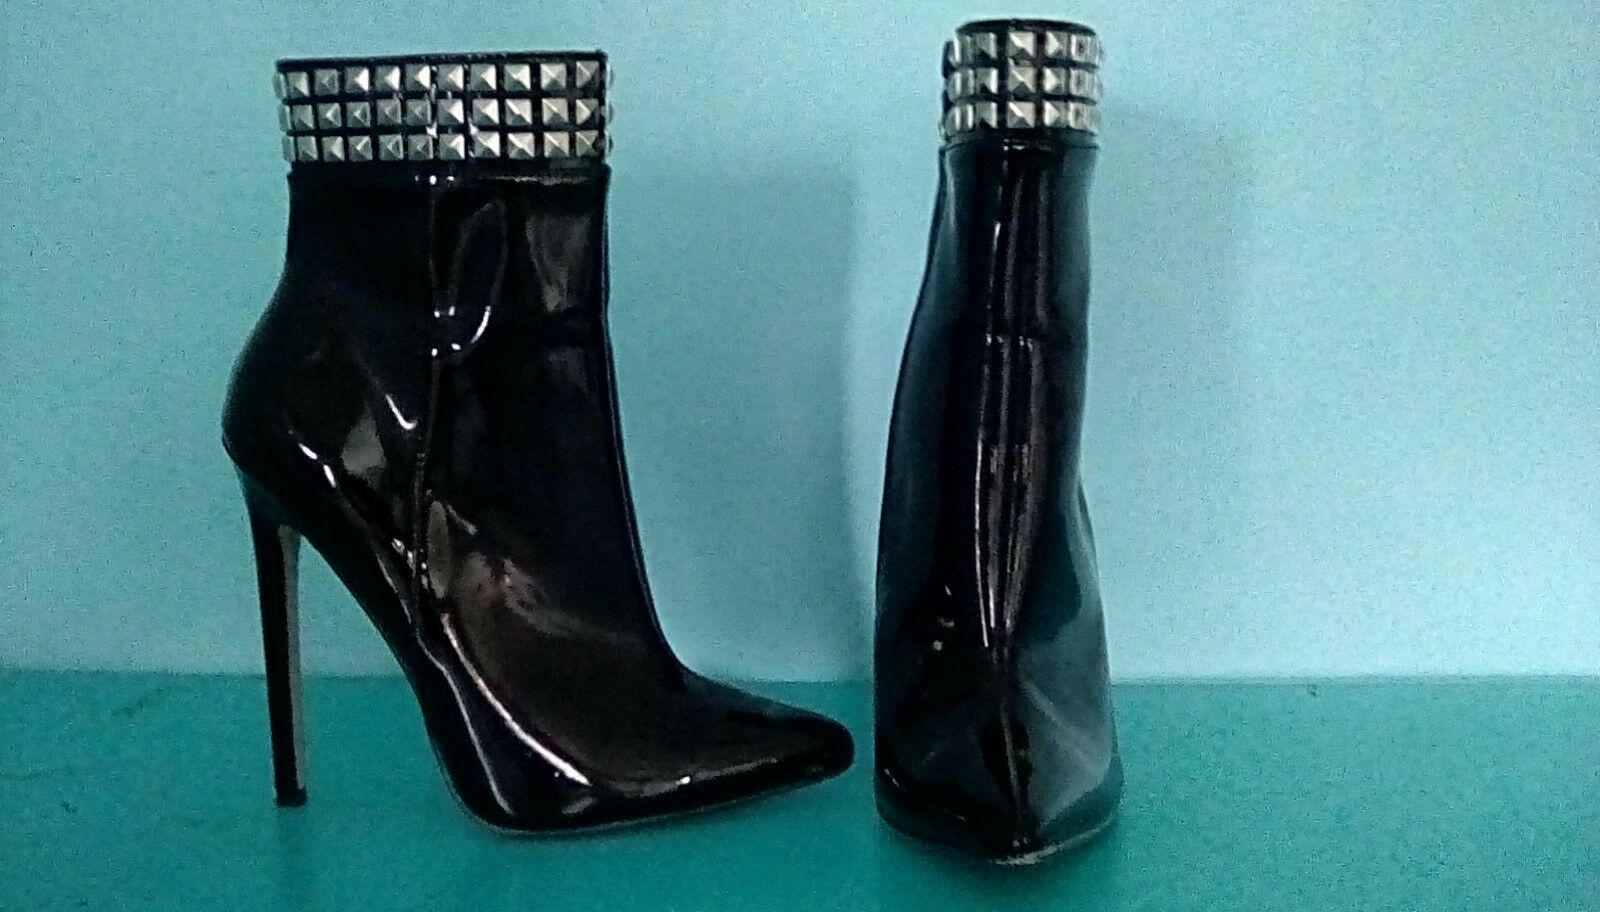 Black Patent Leather Ankle Boots with Studded Ankle Collar, Size 4